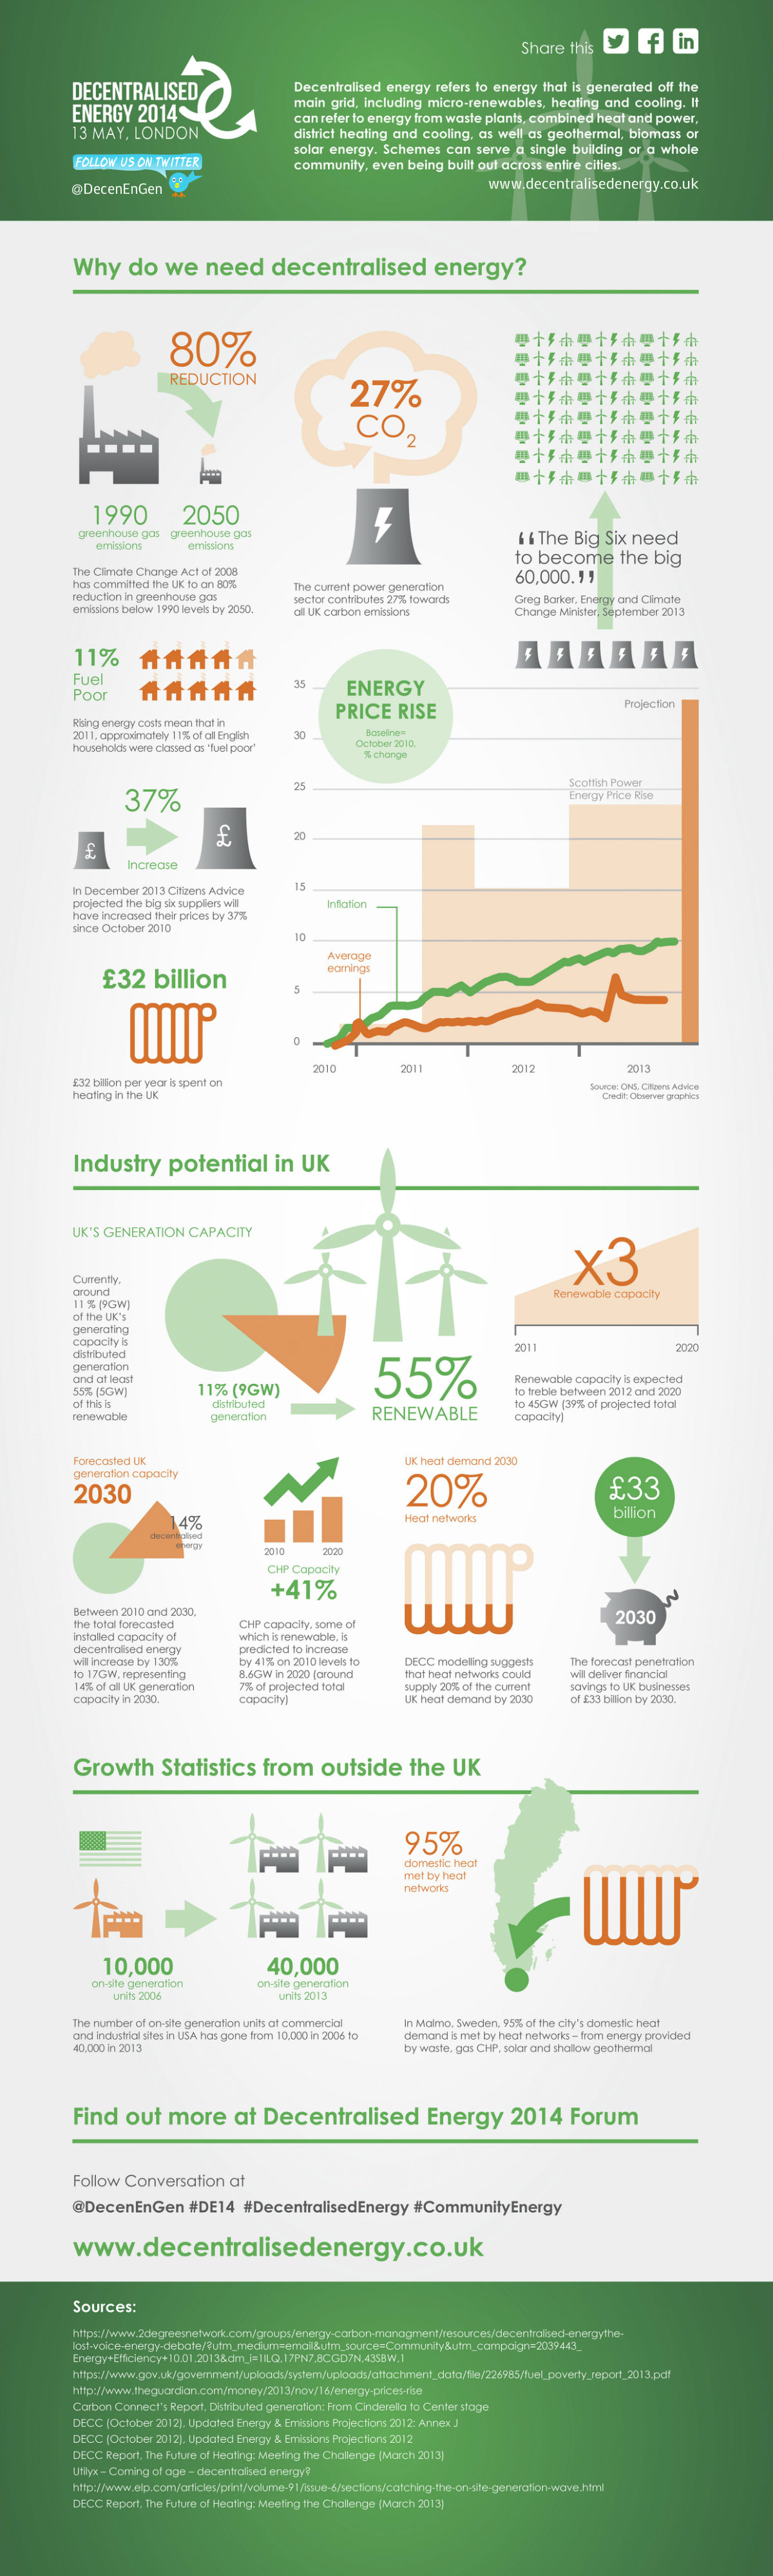 Decentralised-Energy-infographic